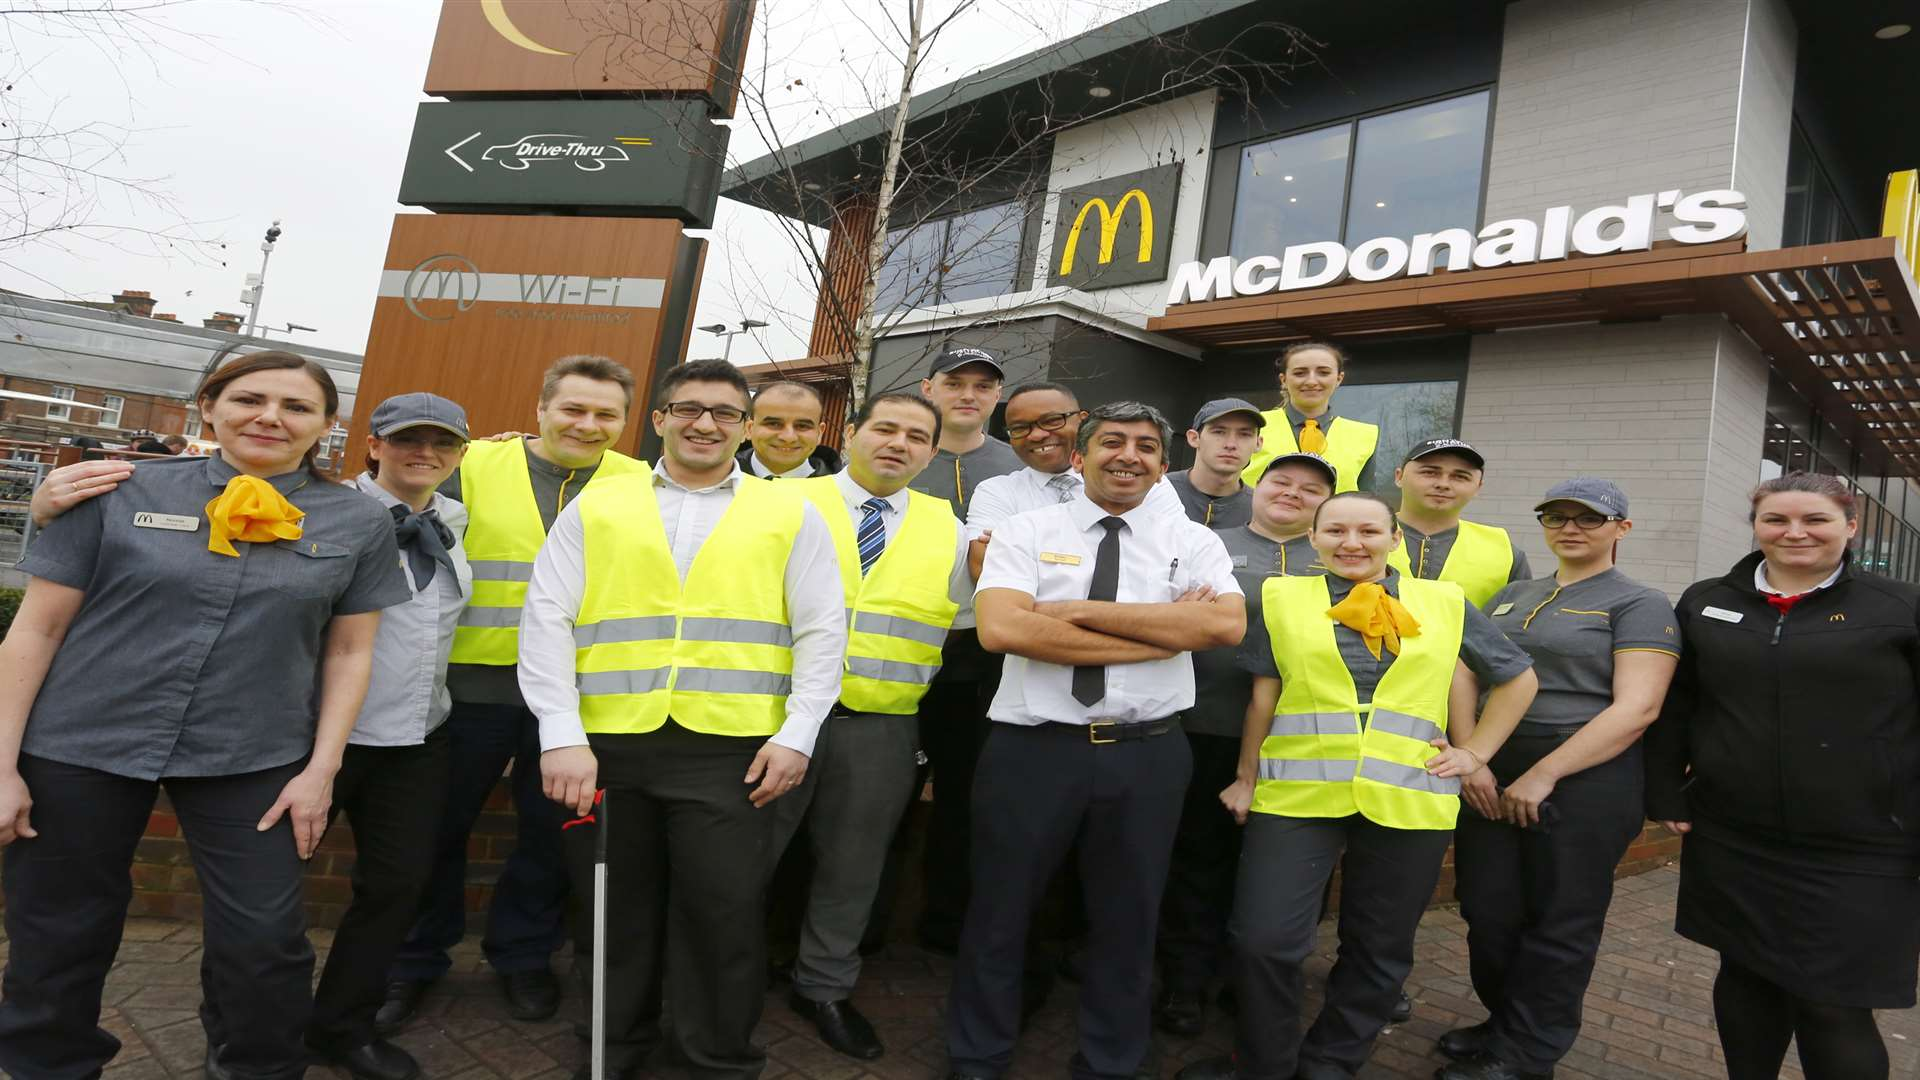 McDonald's staff who are going to be involved in a litter clean up event.